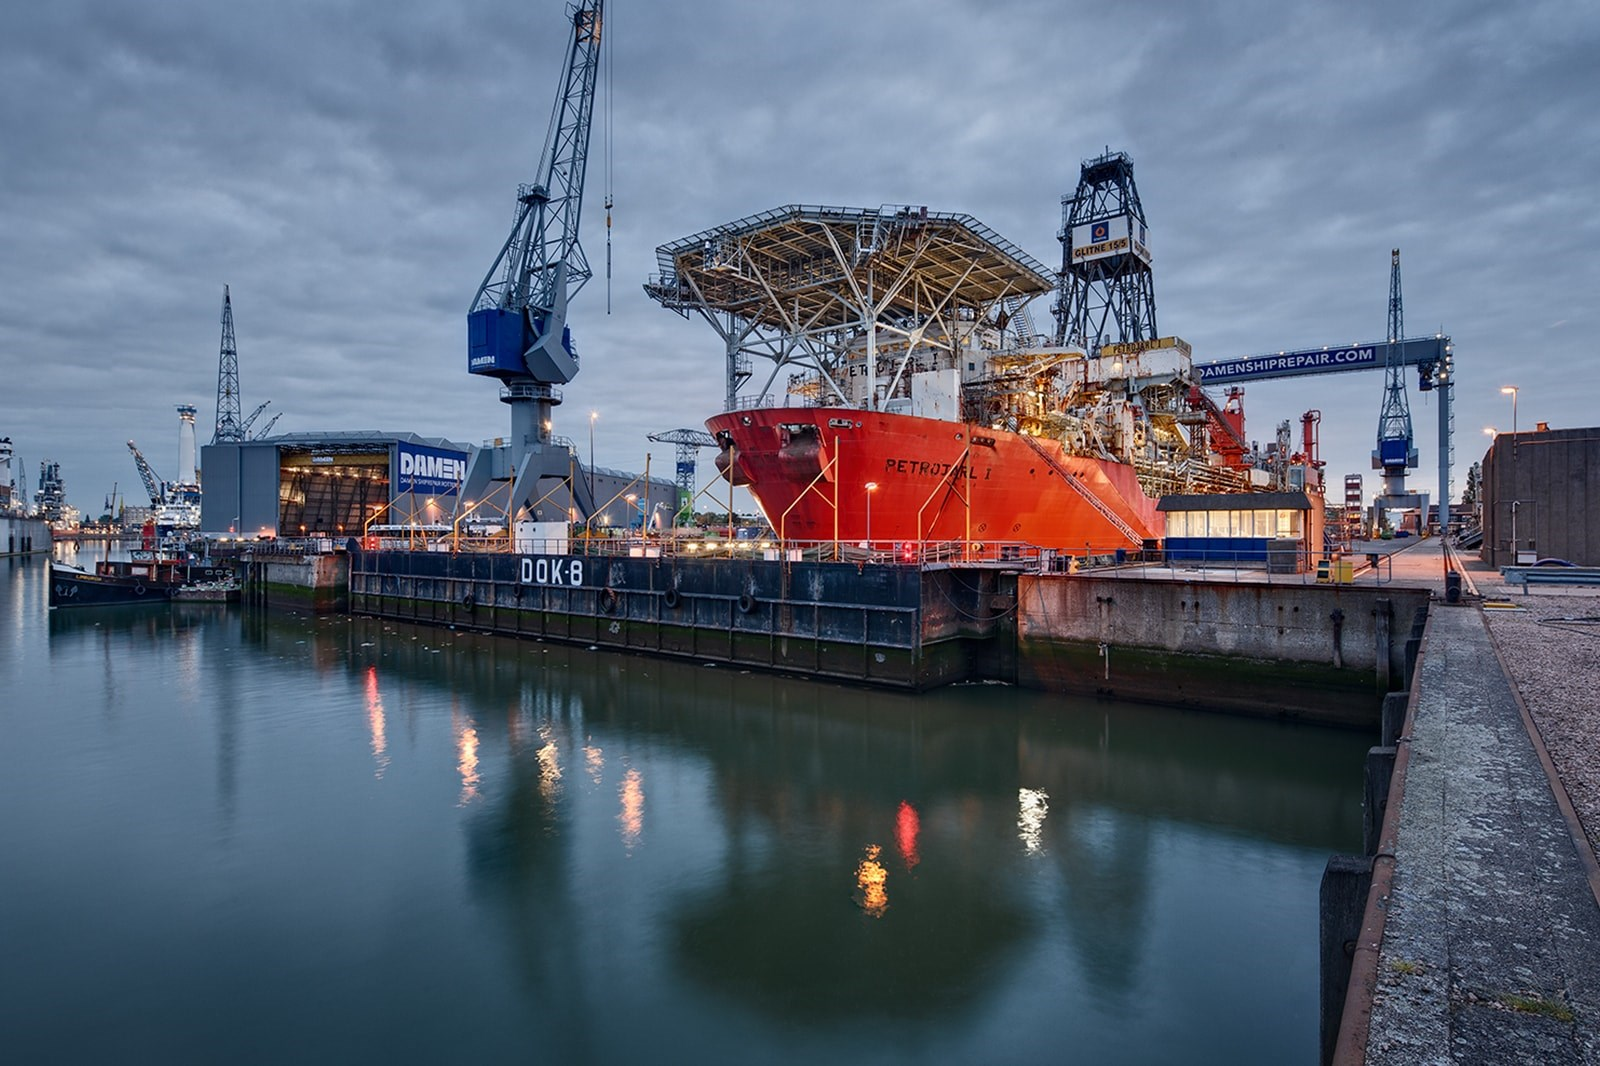 Damen Shipyards